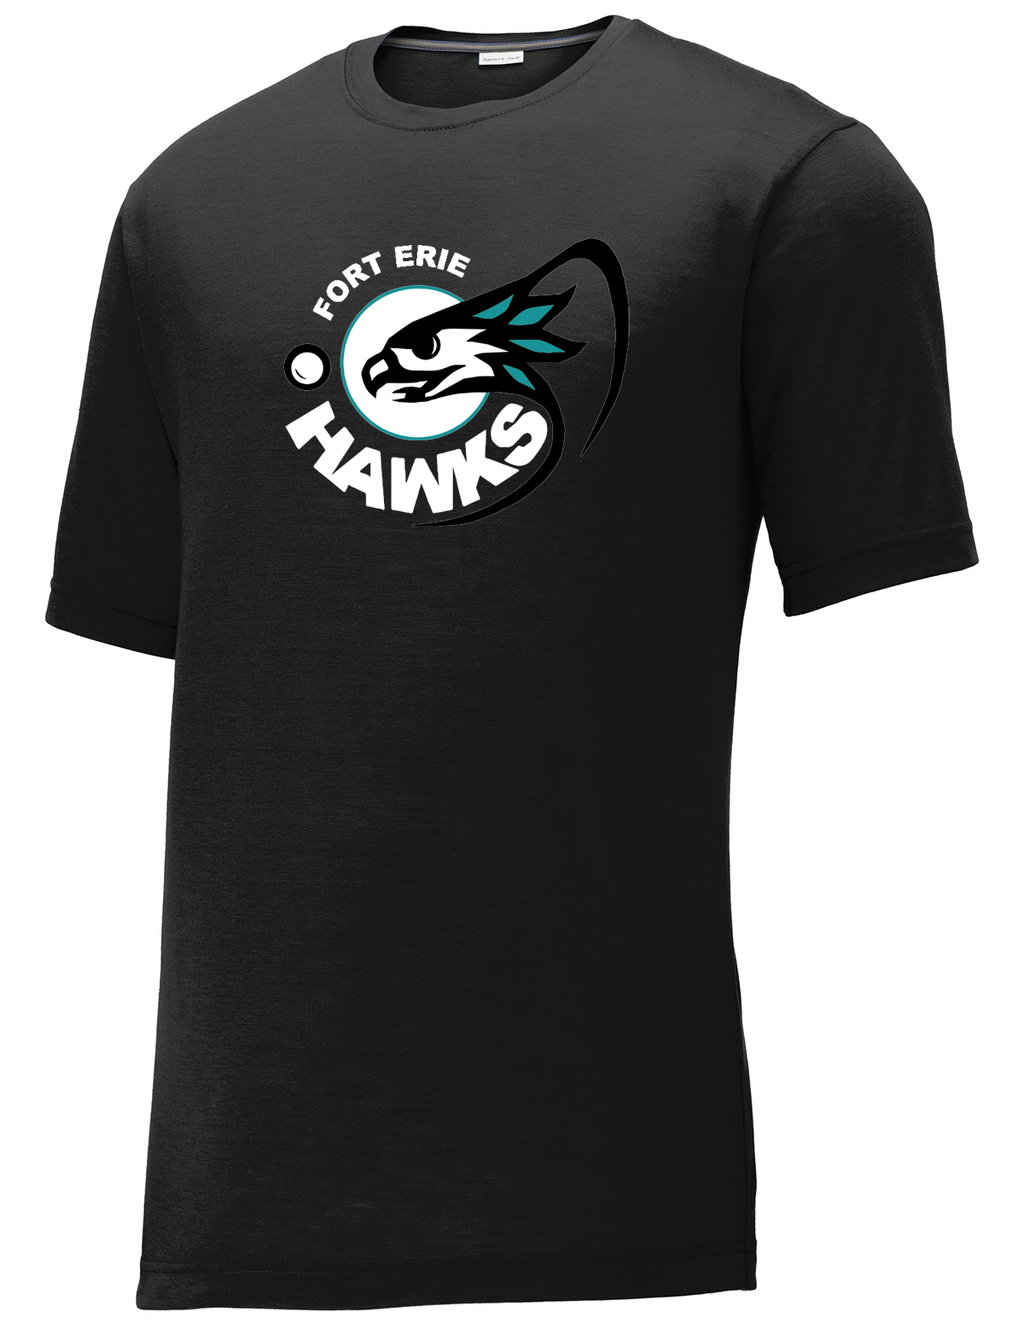 Fort Erie Hawks Black CottonTouch Performance T-Shirt